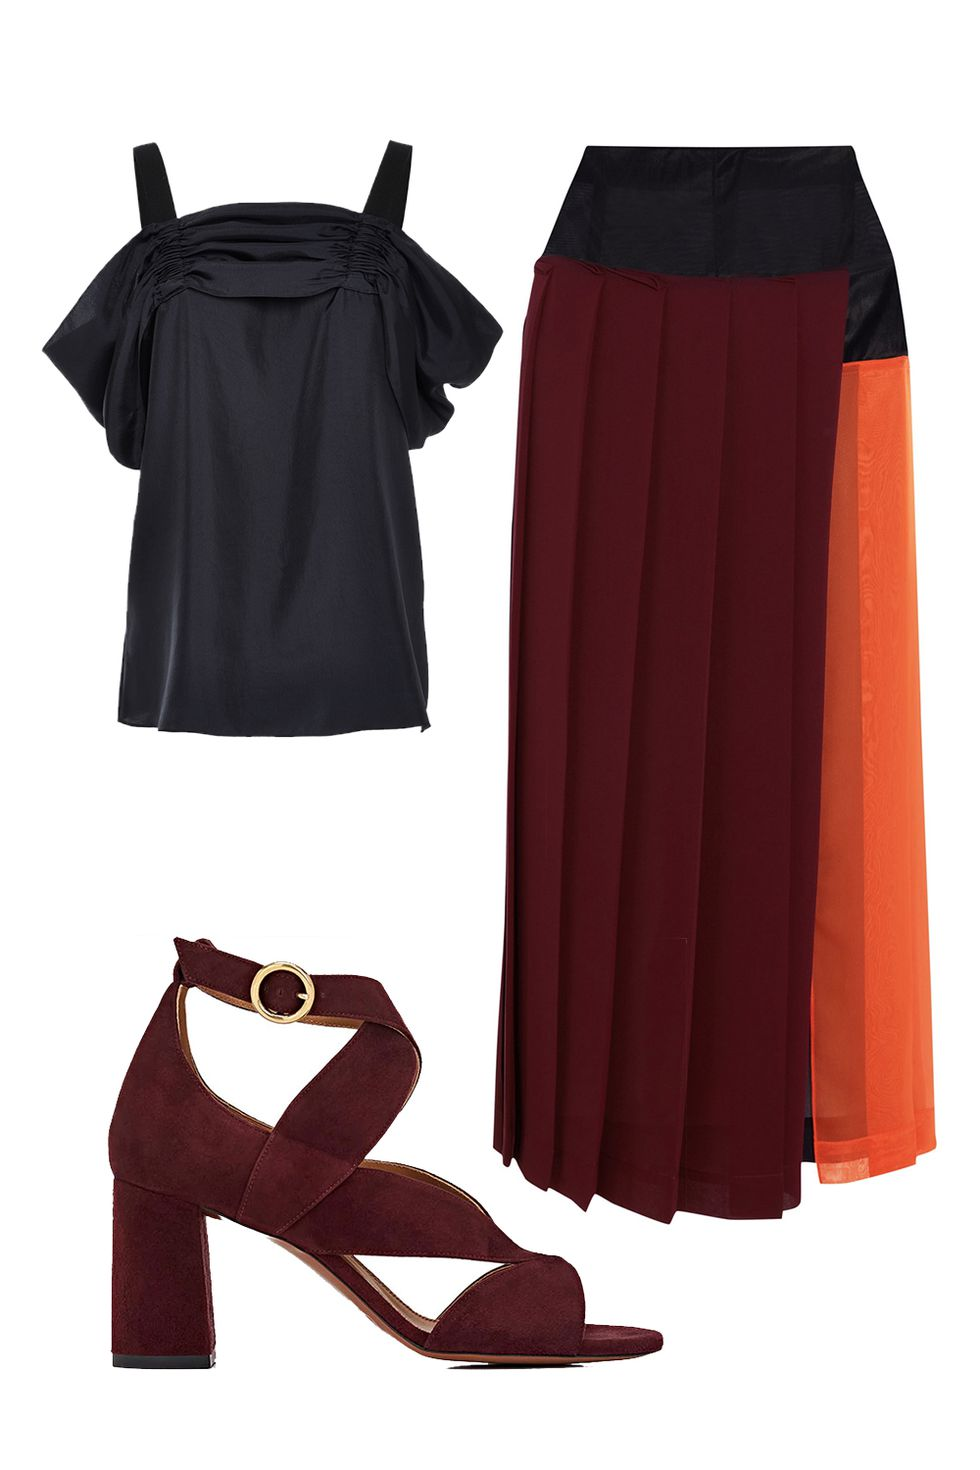 burgundy-midi-skirt-pleated-burgundy-shoe-sandalh-black-top-offshoulder-colorblock-fall-winter-thanksgiving-outfits-holidays-dinner.jpg